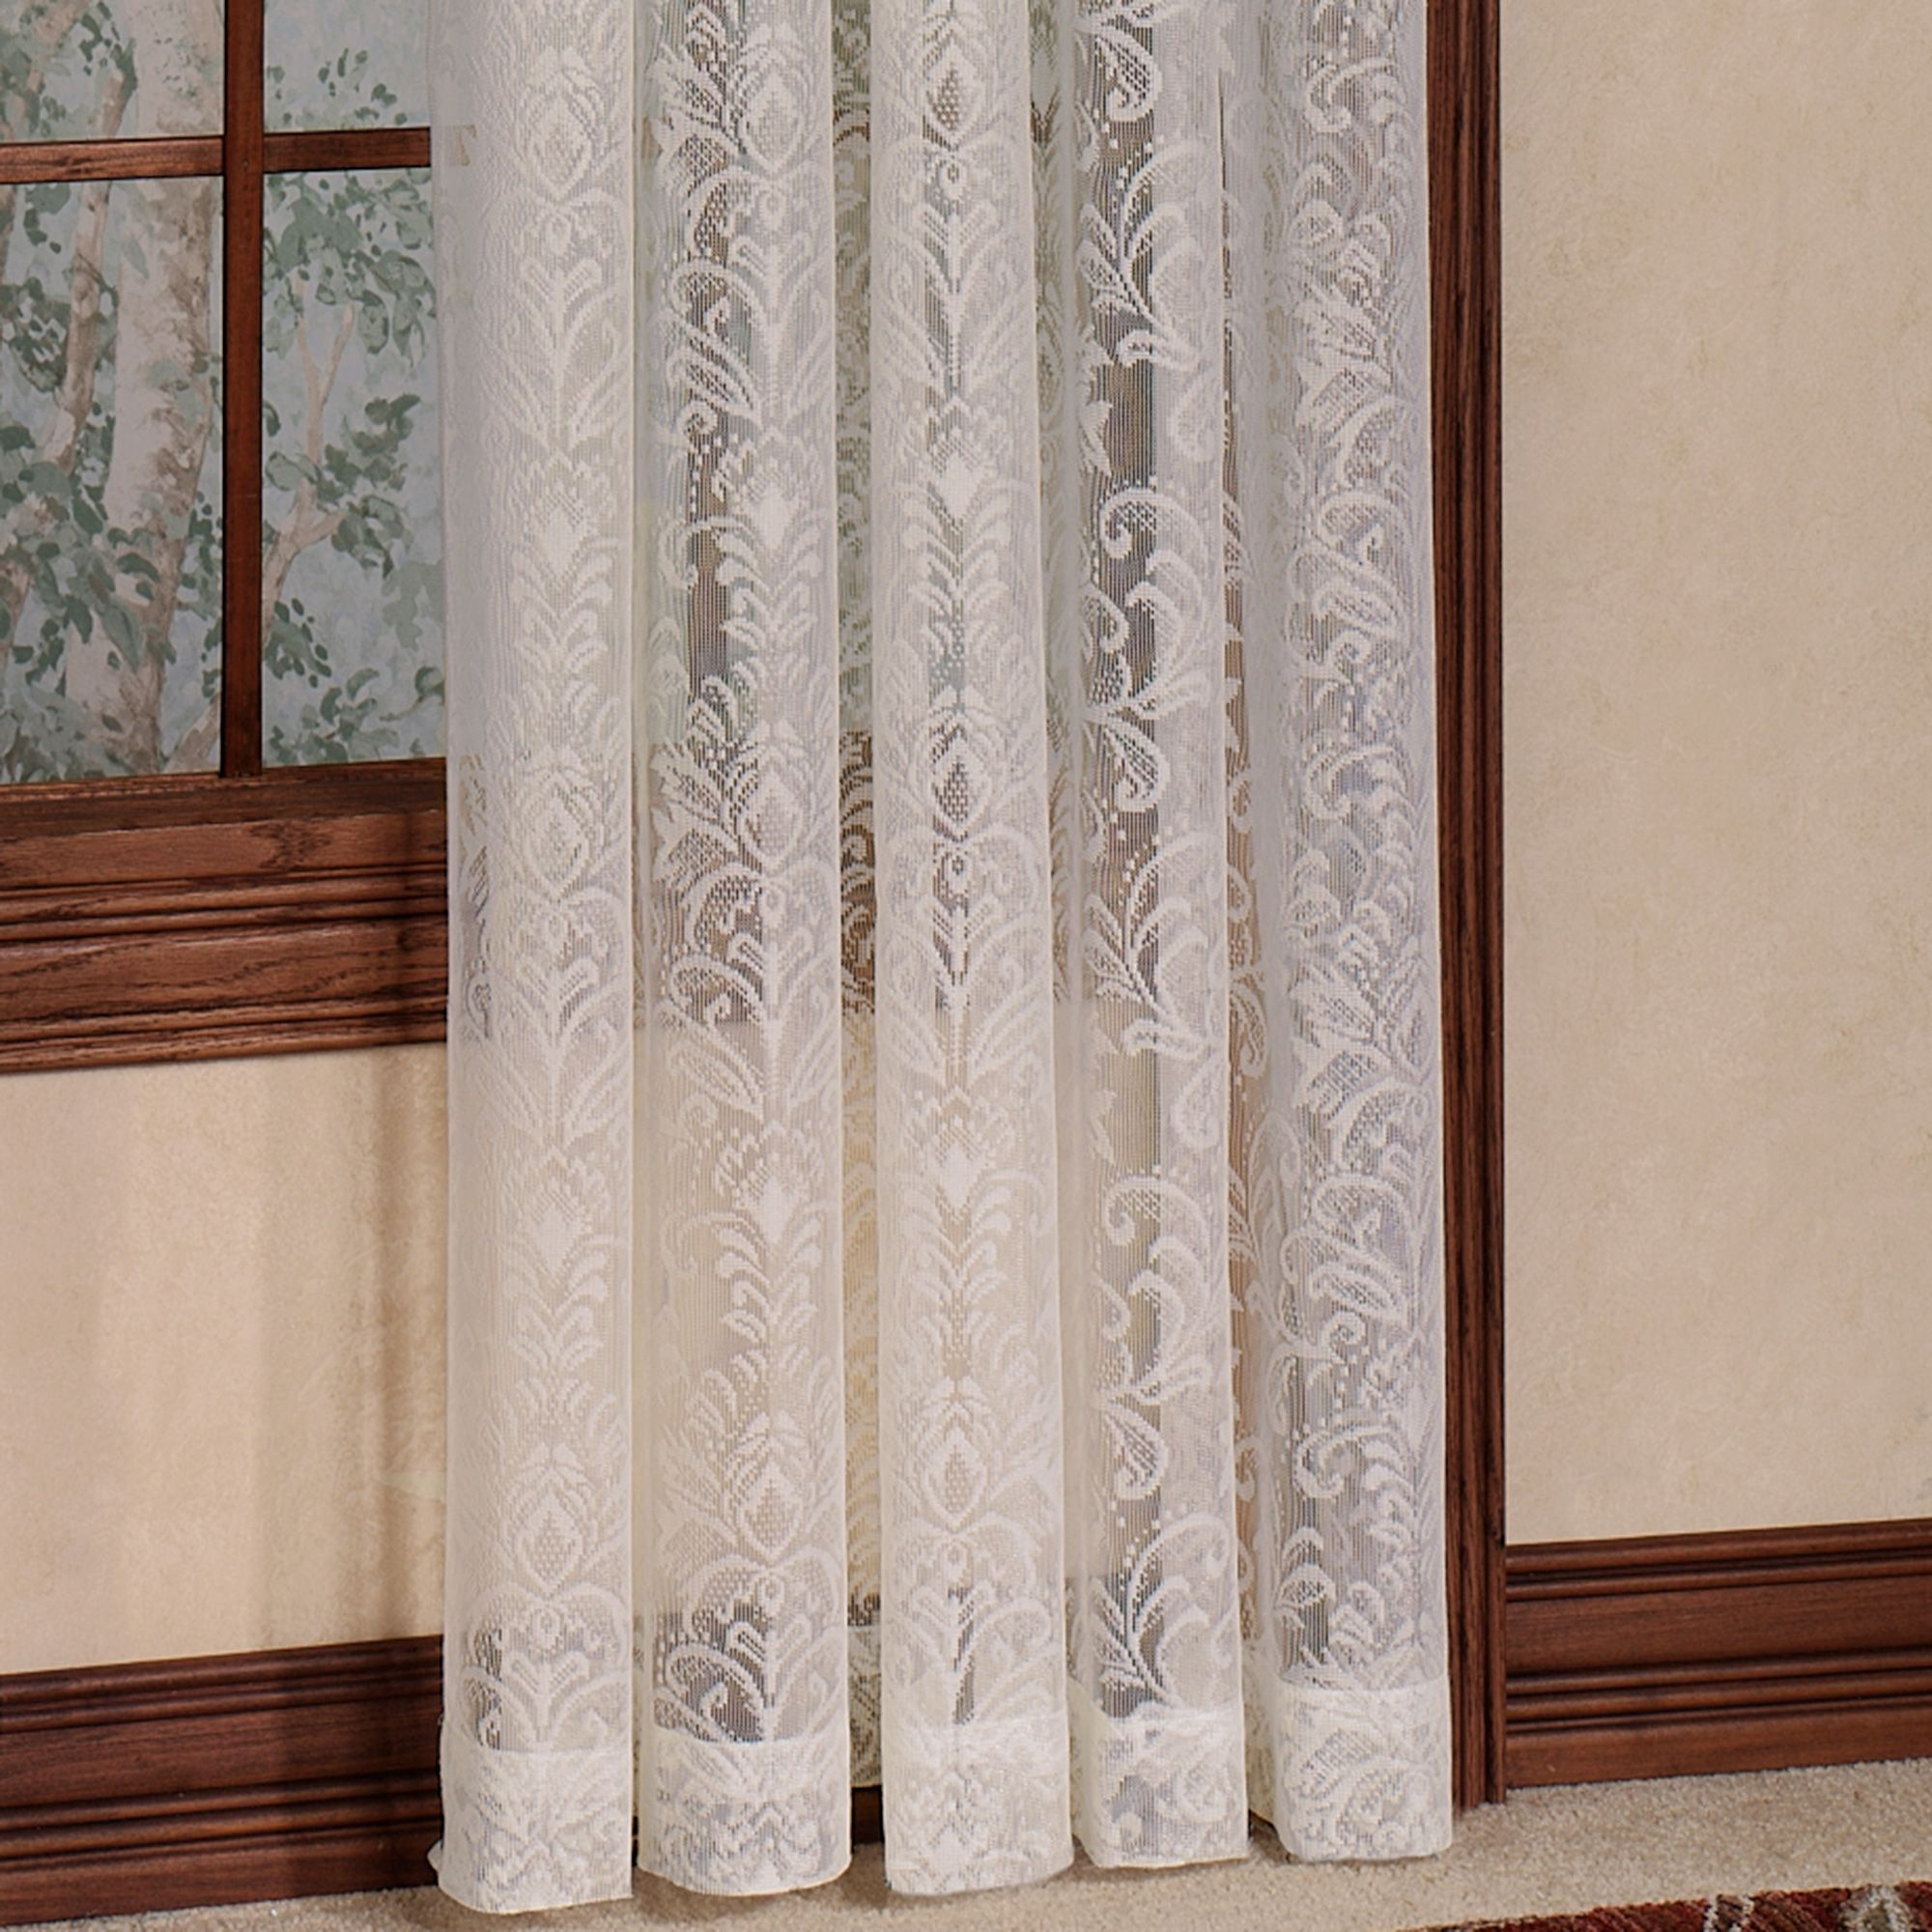 Gardinen Kindermobel Info In 2020 Lace Window Lace Curtain Panels Lace Window Treatments - Vorhang Zu Englisch